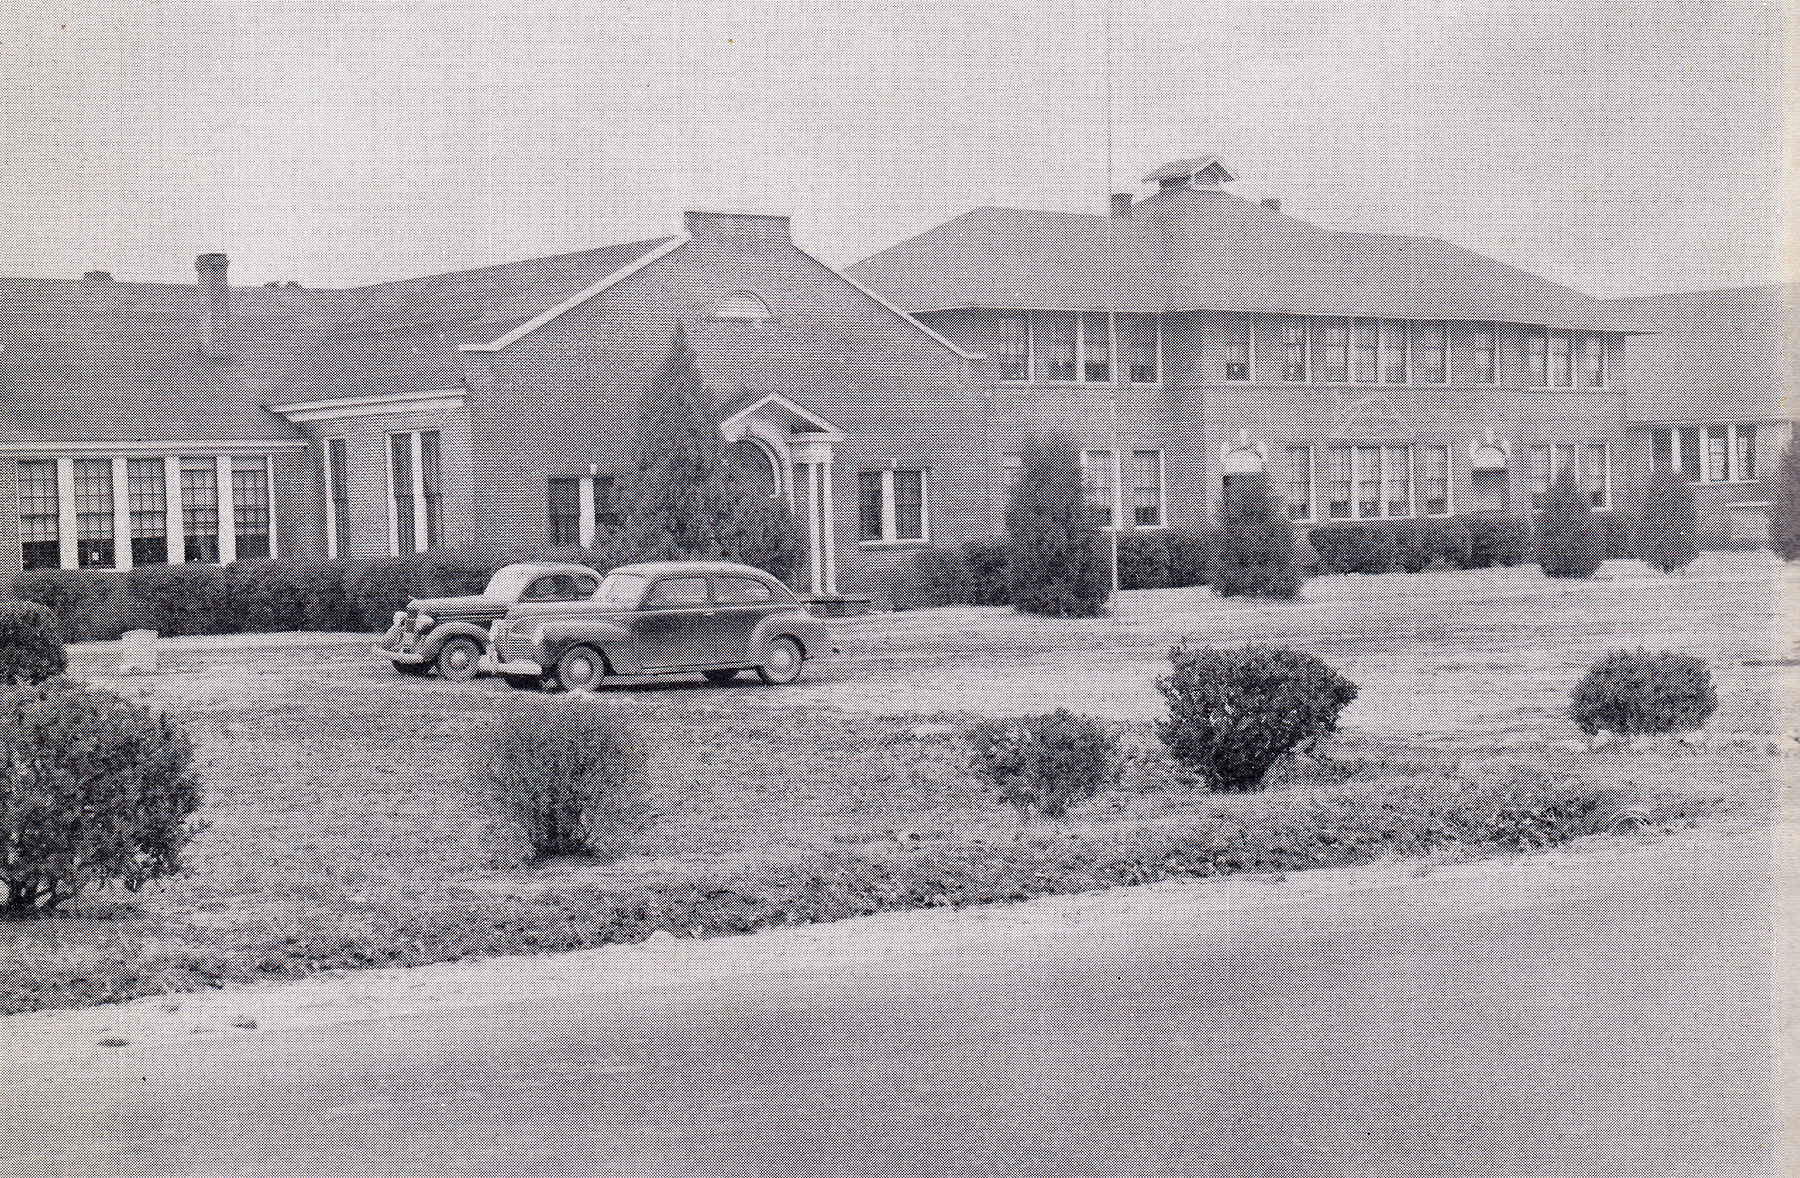 Blythewood School Campus about 1950.